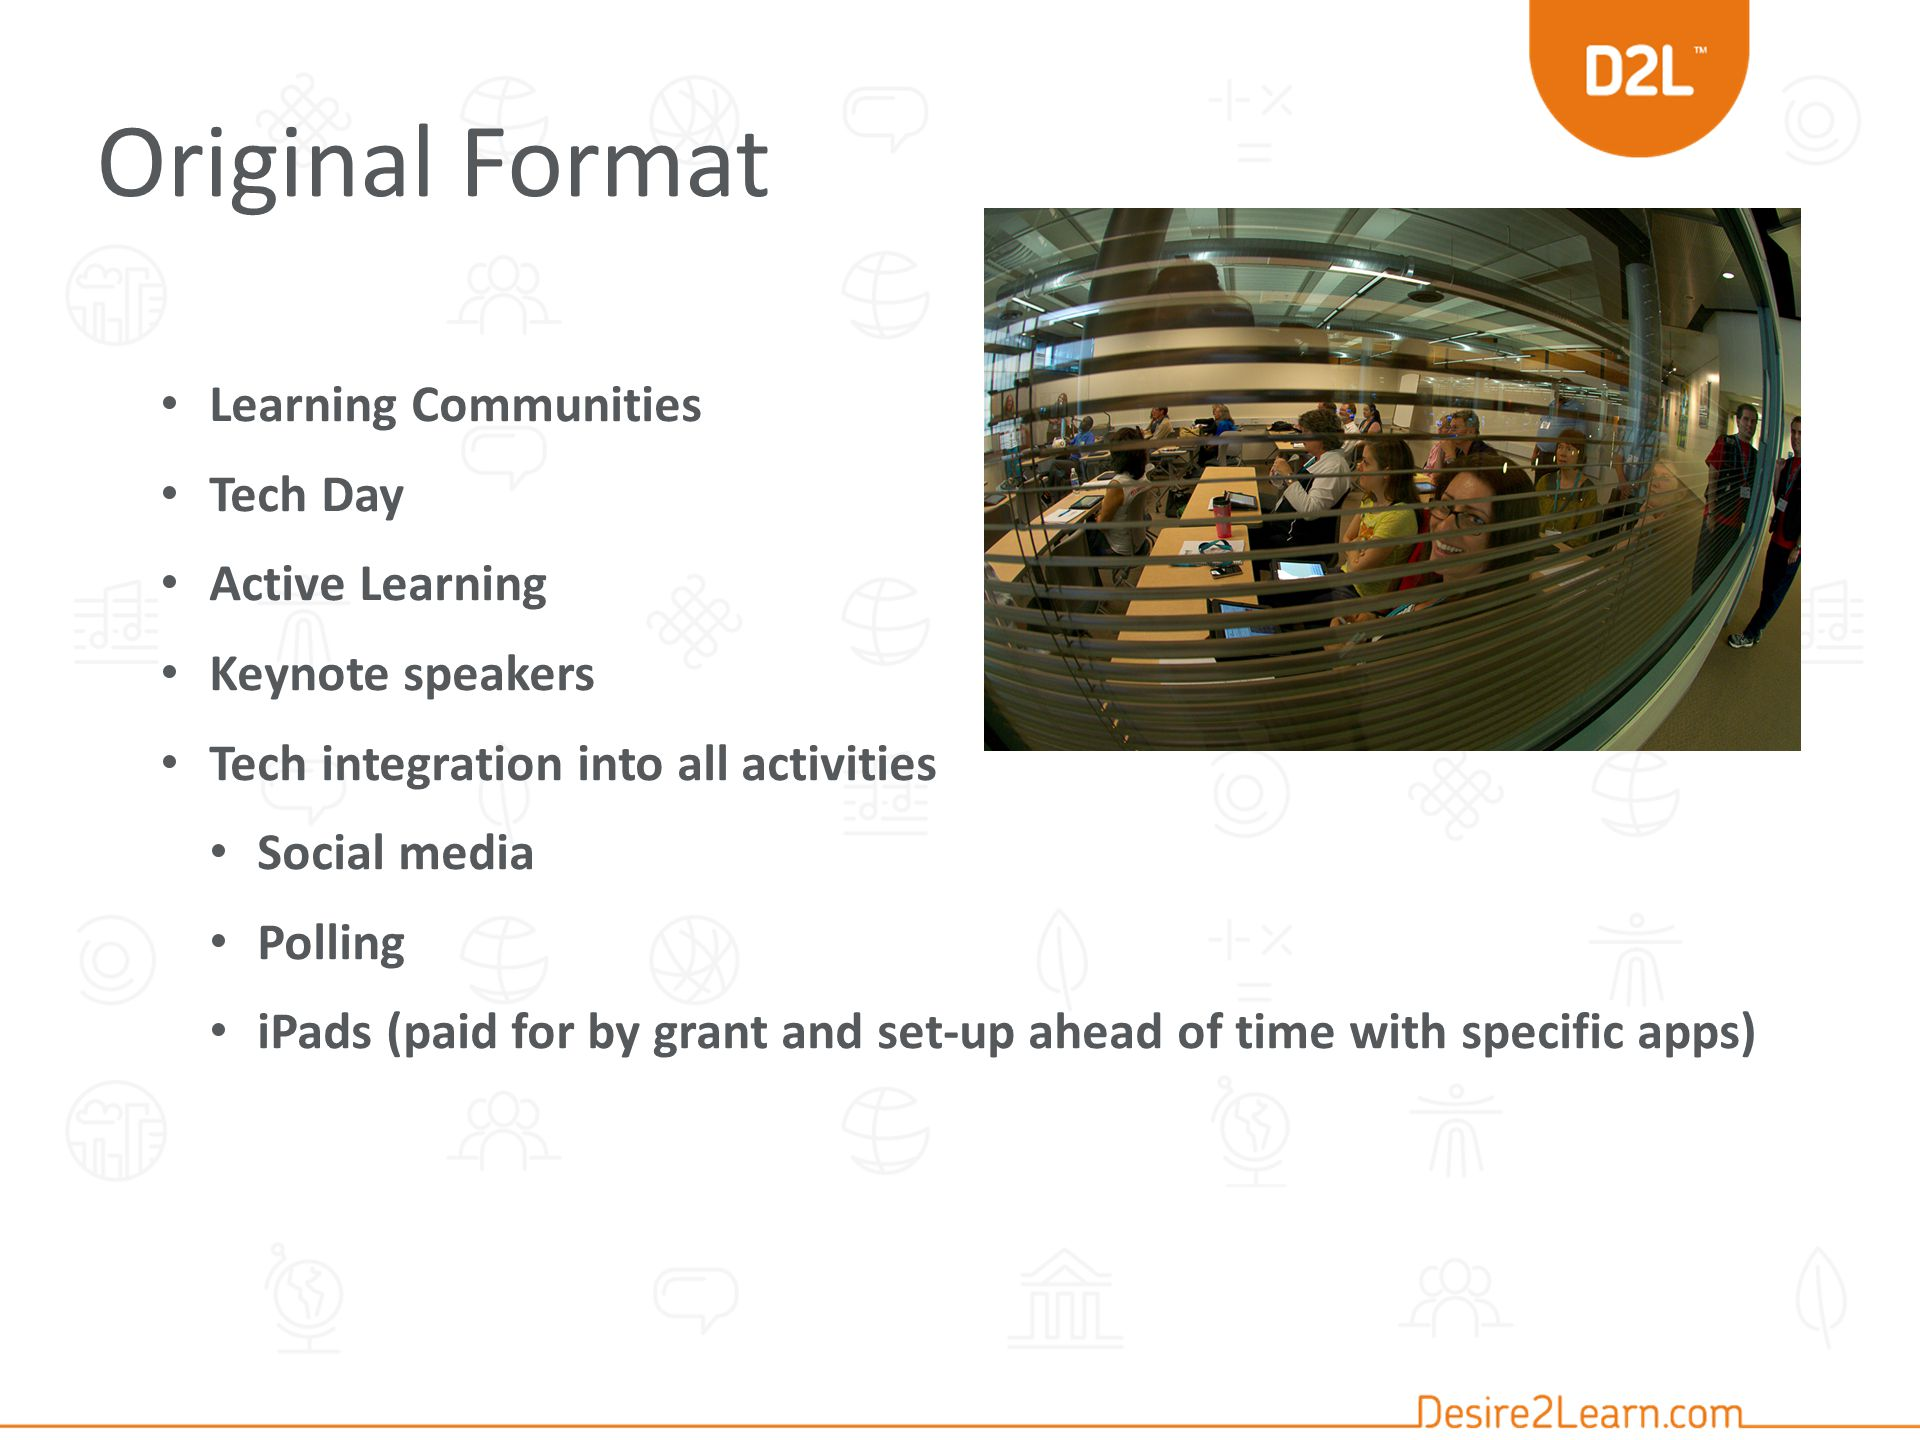 Original Format Learning Communities Tech Day Active Learning Keynote speakers Tech integration into all activities Social media Polling iPads (paid for by grant and set-up ahead of time with specific apps)